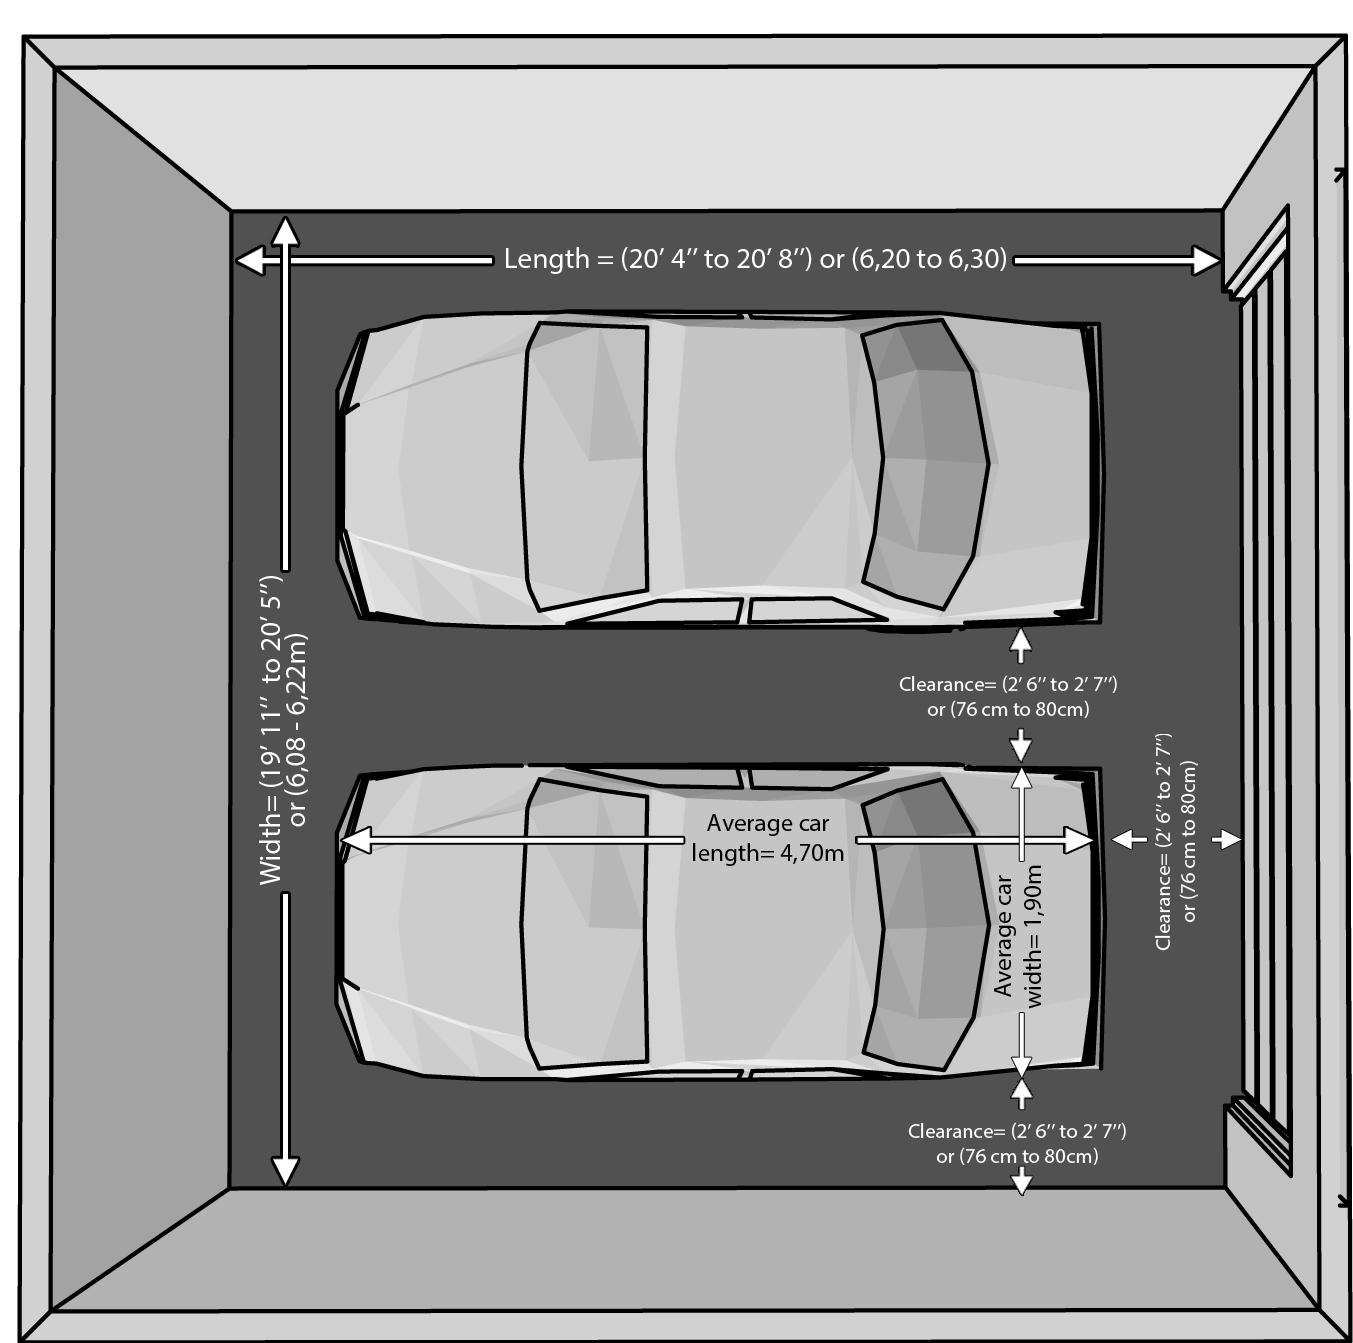 The dimensions of an one car and a two car garage for 2 and a half car garage dimensions